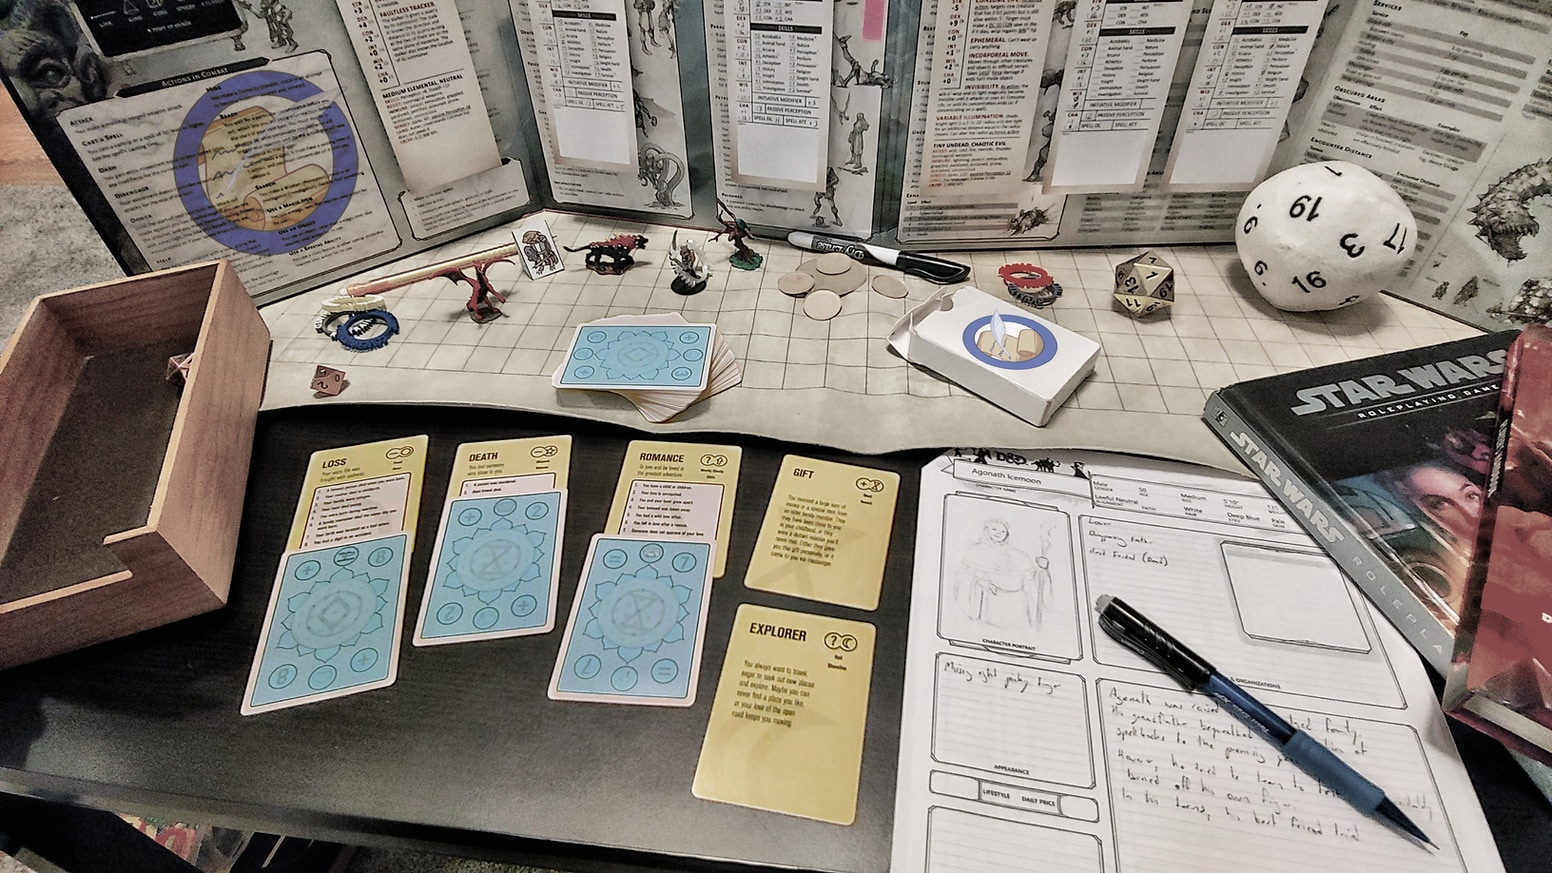 BBS is a card-based random life history generator for creative writing, RPG characters, RPG Gamemasters, and even song writers. Works with any RPG system.